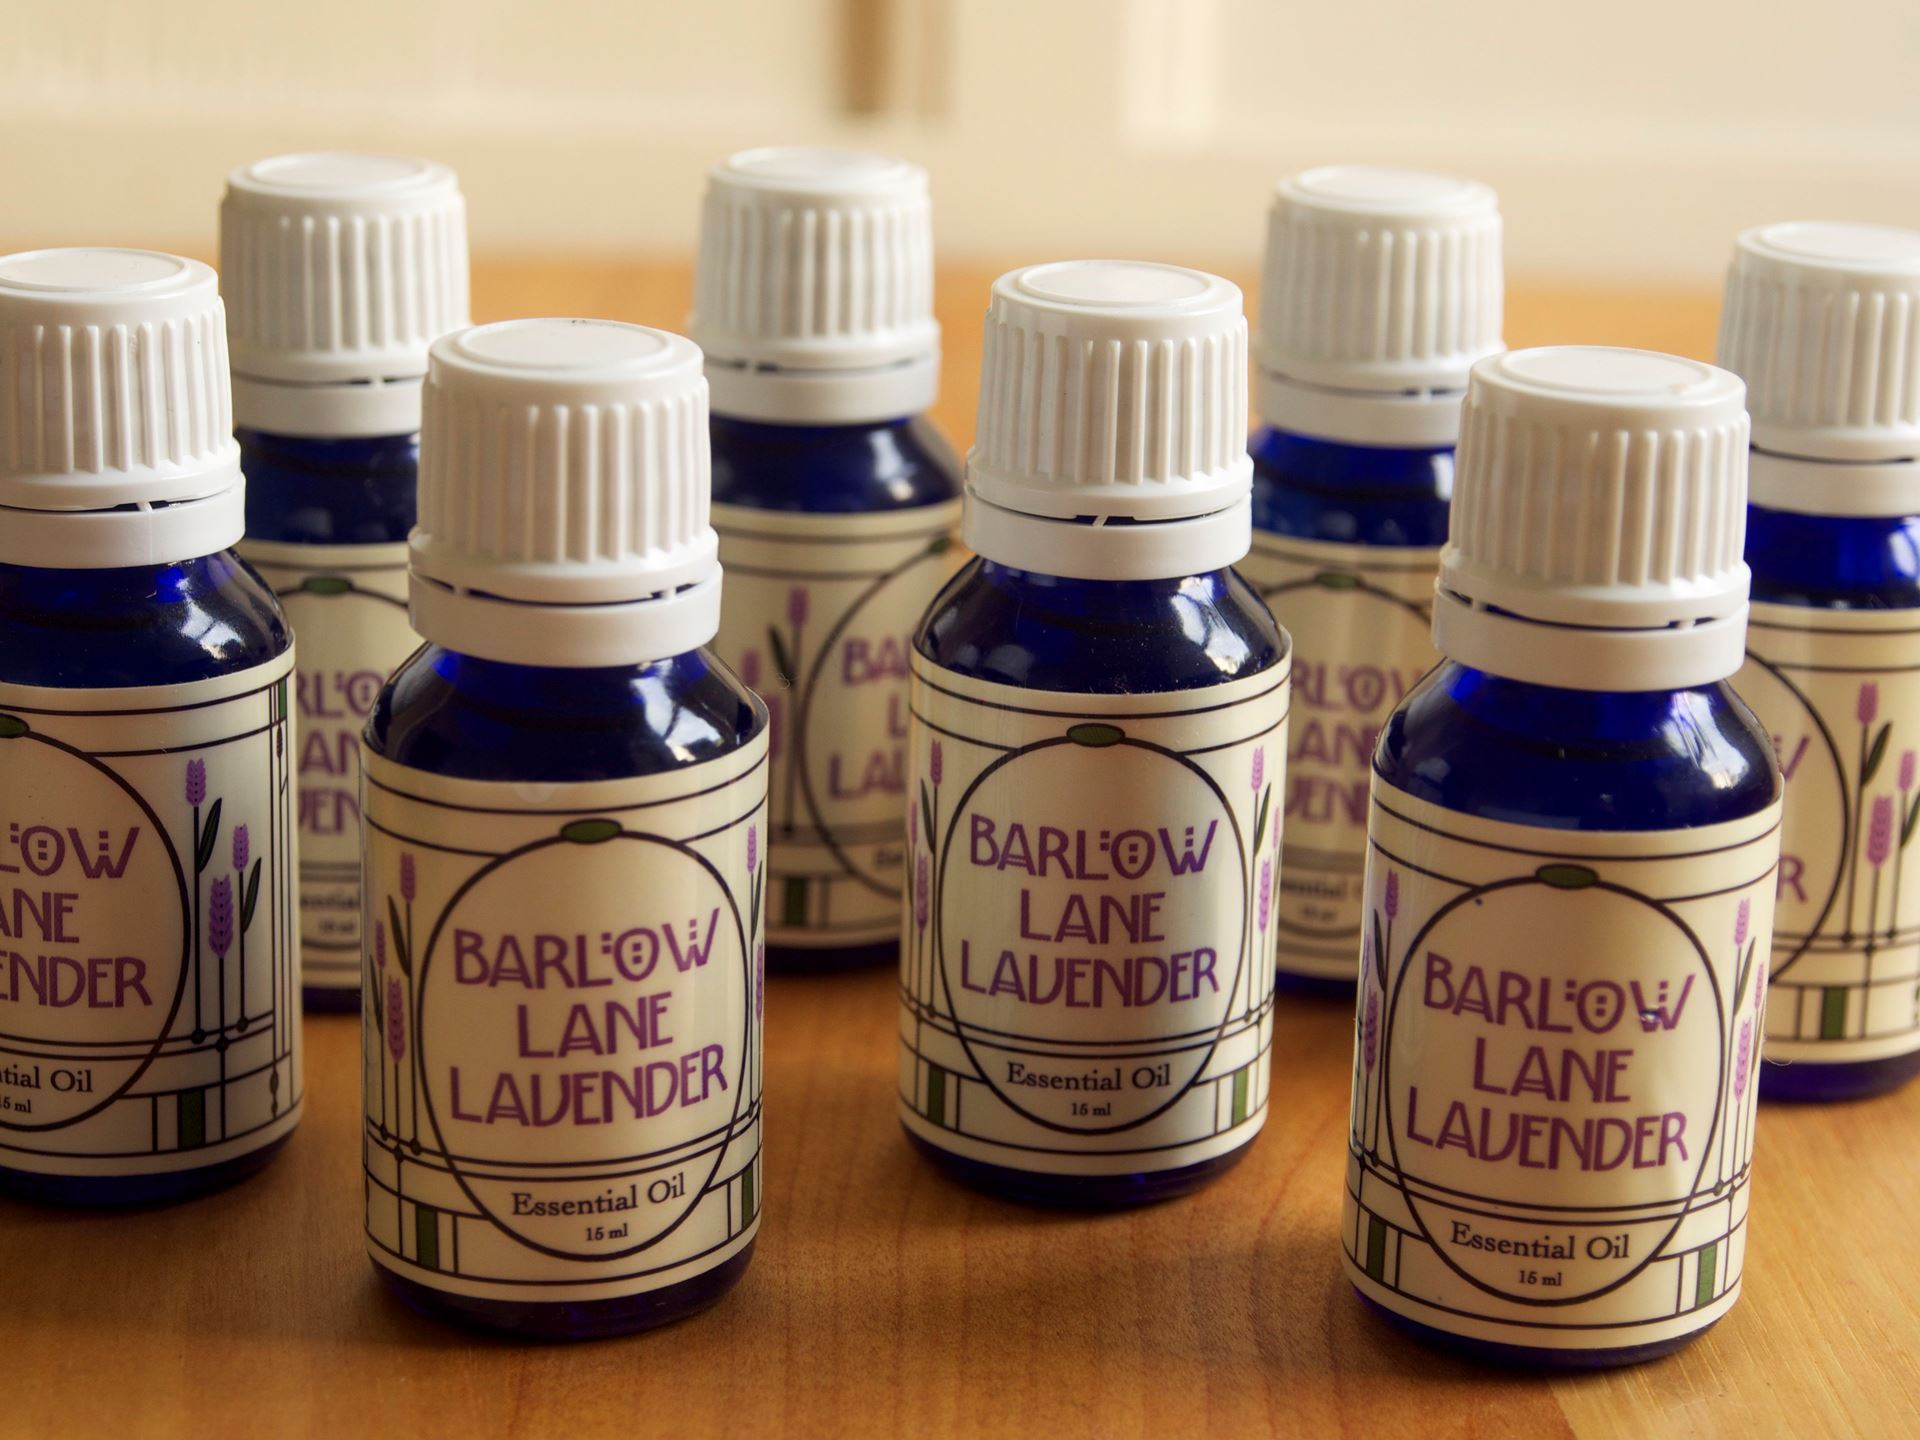 Picture of Barlow Lane Lavender Oil 15 ml